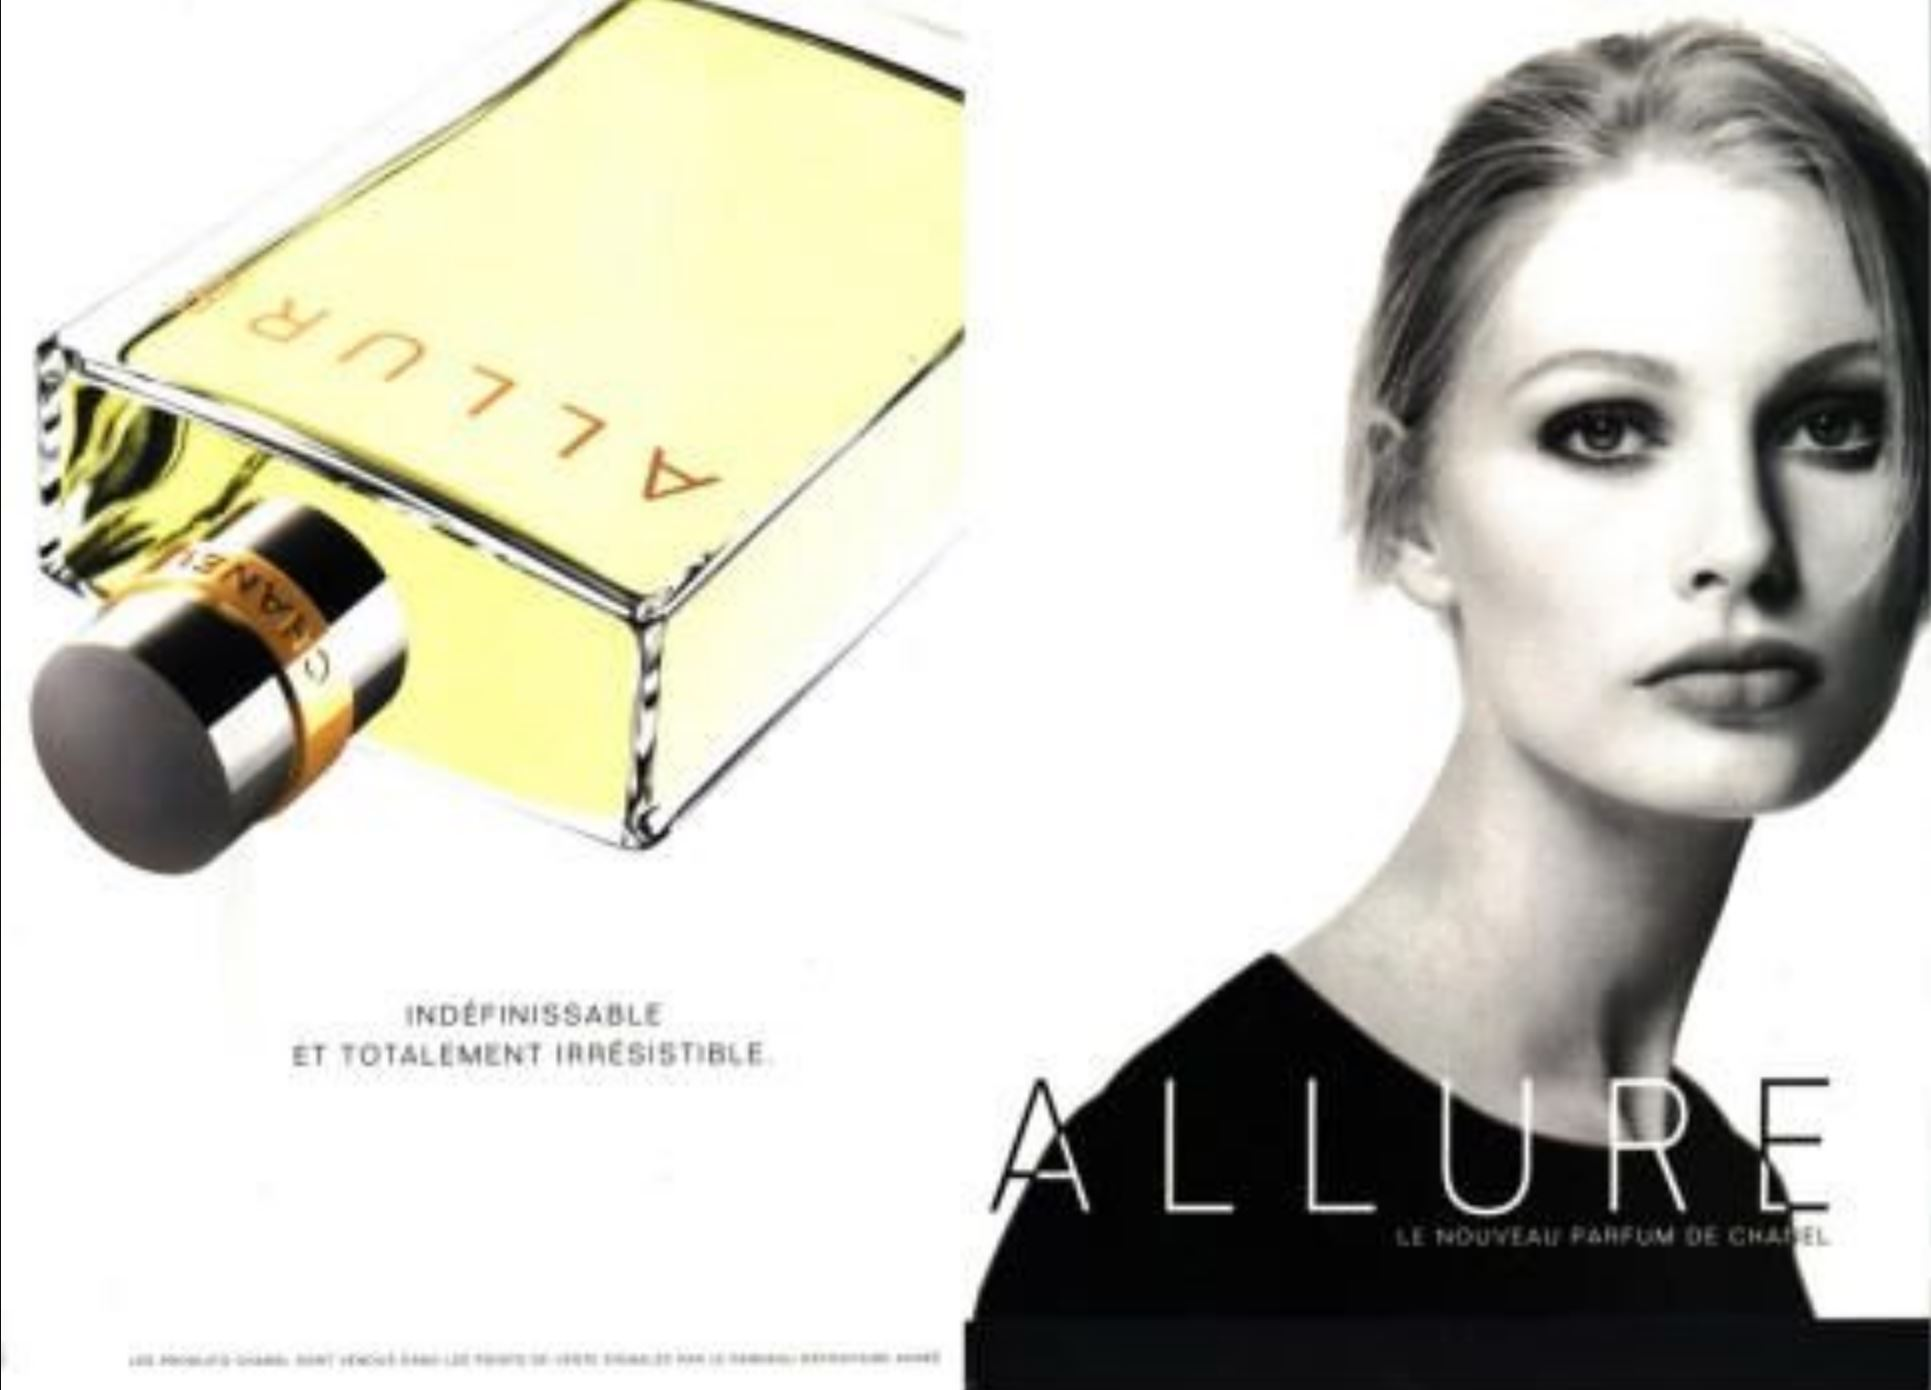 parfum Channel Allure 1997 model kirsty hume inverse